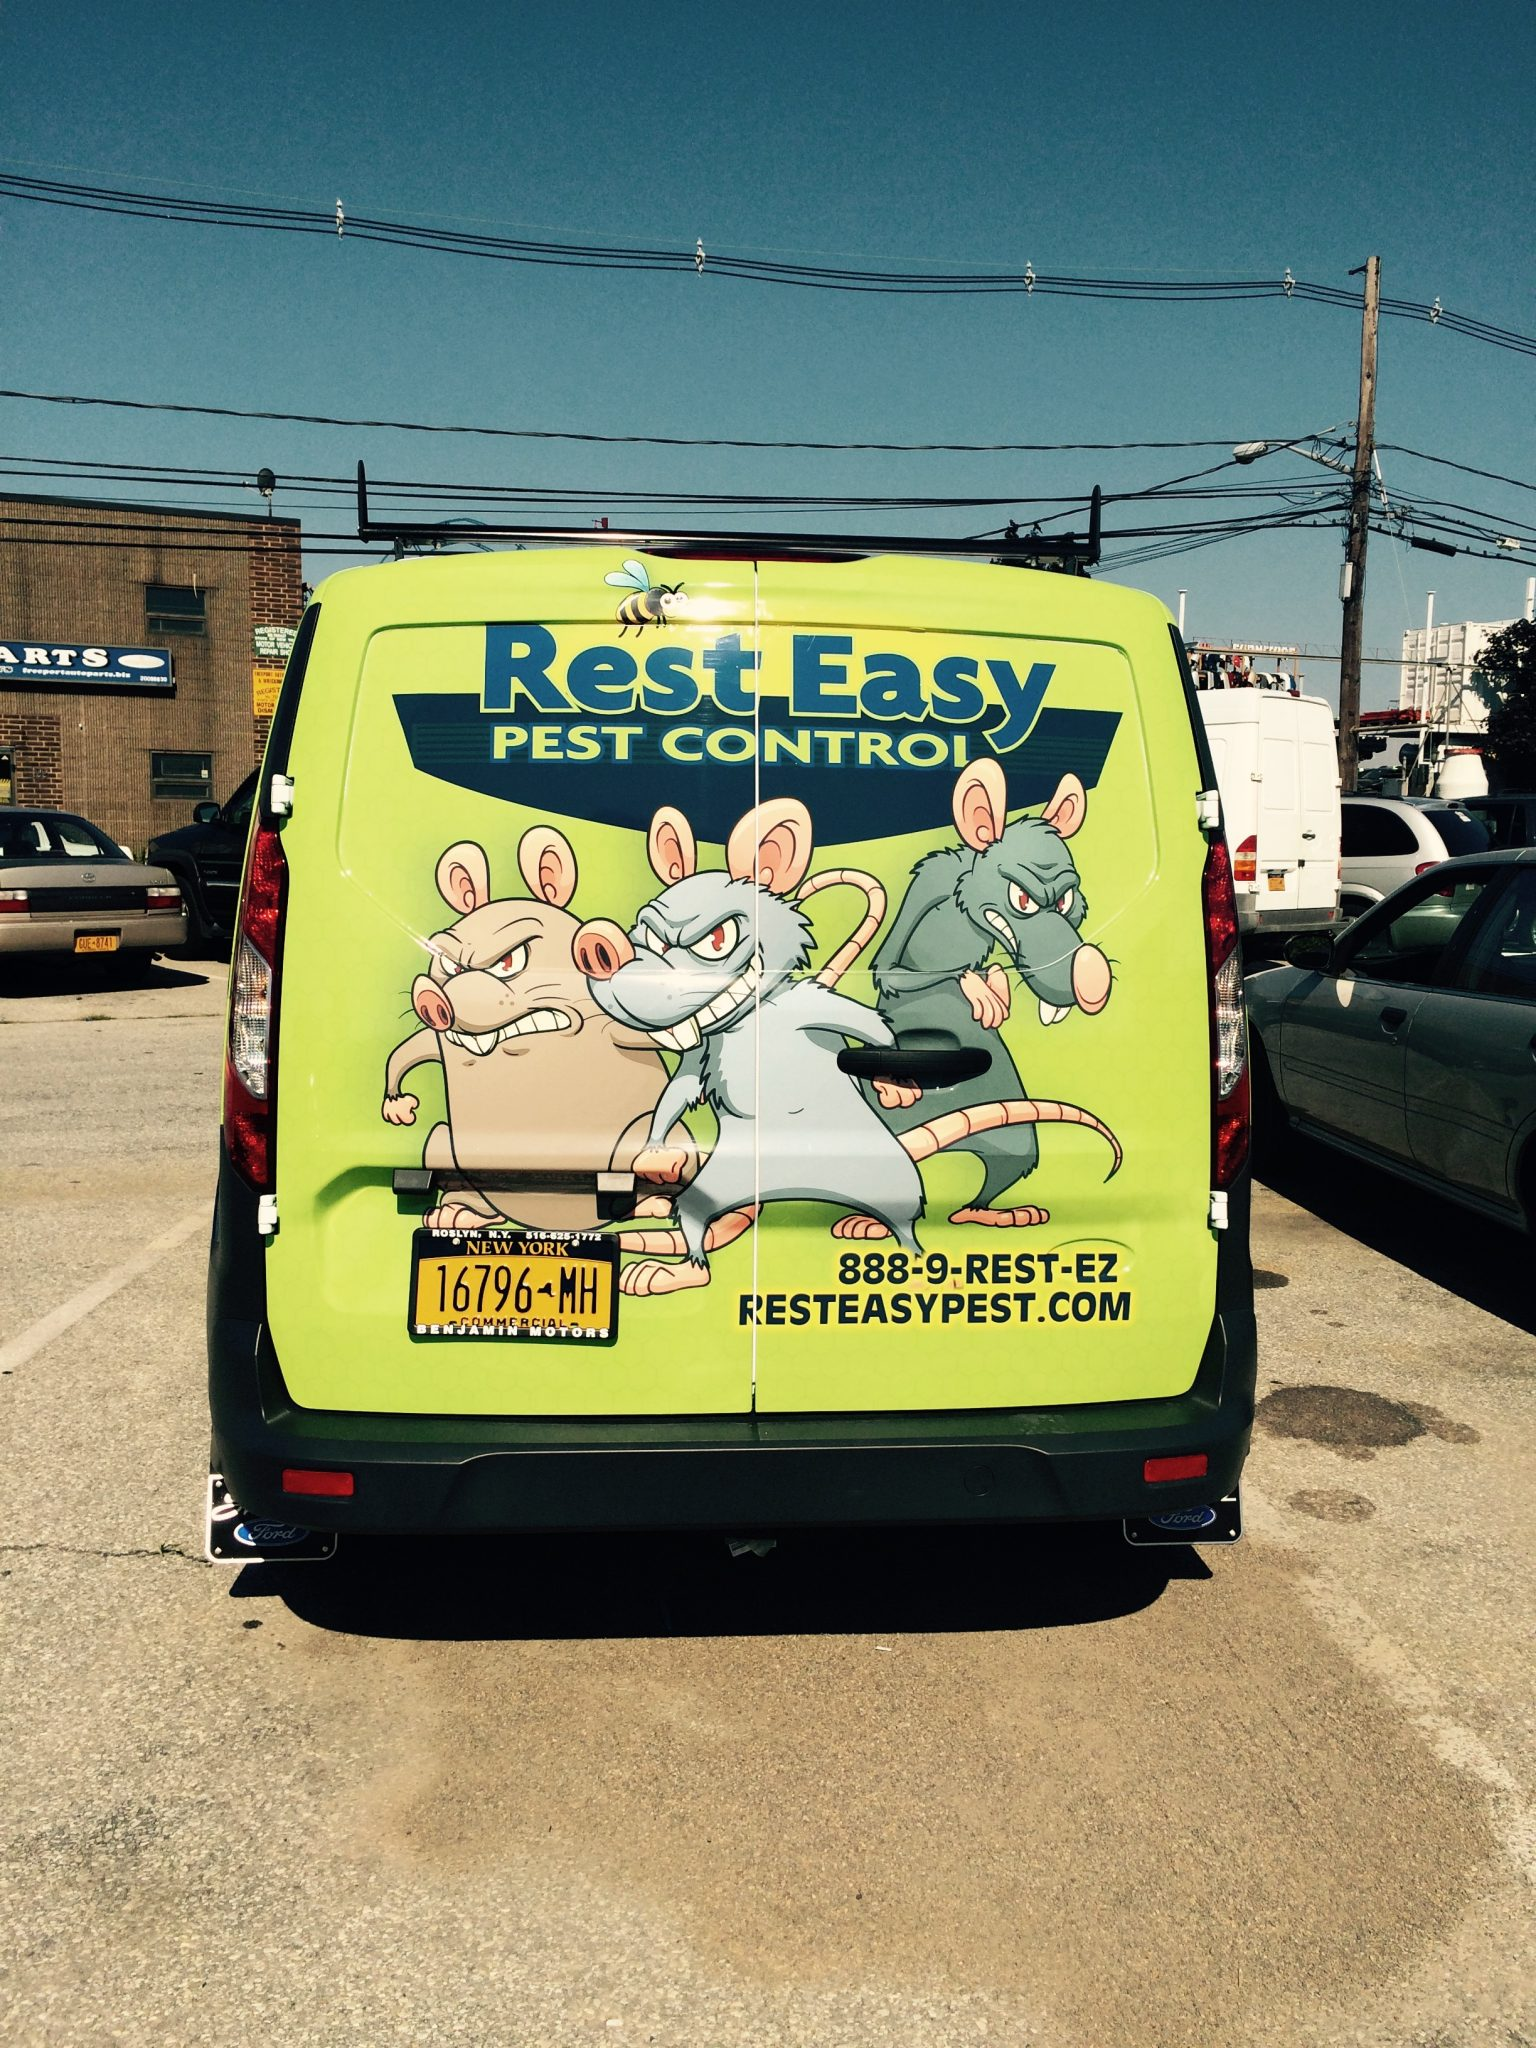 epidemic, Rest Easy pest Control, Pest control services, Long Island NY, NYC, Rockland, Westchester, New York, Long Island, Pest Control, Exterminator, Brooklyn, Bronx, Staten Island, NY, exterminator, Nassau County, Suffolk County, bugs, bed bugs, organic pest control, organic exterminator, organic pest, Getting a termite infestation problem under control quickly, contact us, rest easy, pest control, exterminator, nyc, new york city, brooklyn, queens, nassau, suffolk, new york, rockland westchester, bed bugs, organic pest, Rest Easy pest Control, Pest control services, Long Island NY, NYC, Rockland, Westchester, New York, Long Island, Pest Control, Exterminator, Brooklyn, Bronx, Staten Island, NY, exterminator, Nassau County, Suffolk County, bugs, bed bugs, organic pest control, organic exterminator, organic pest, ants, ants persisting